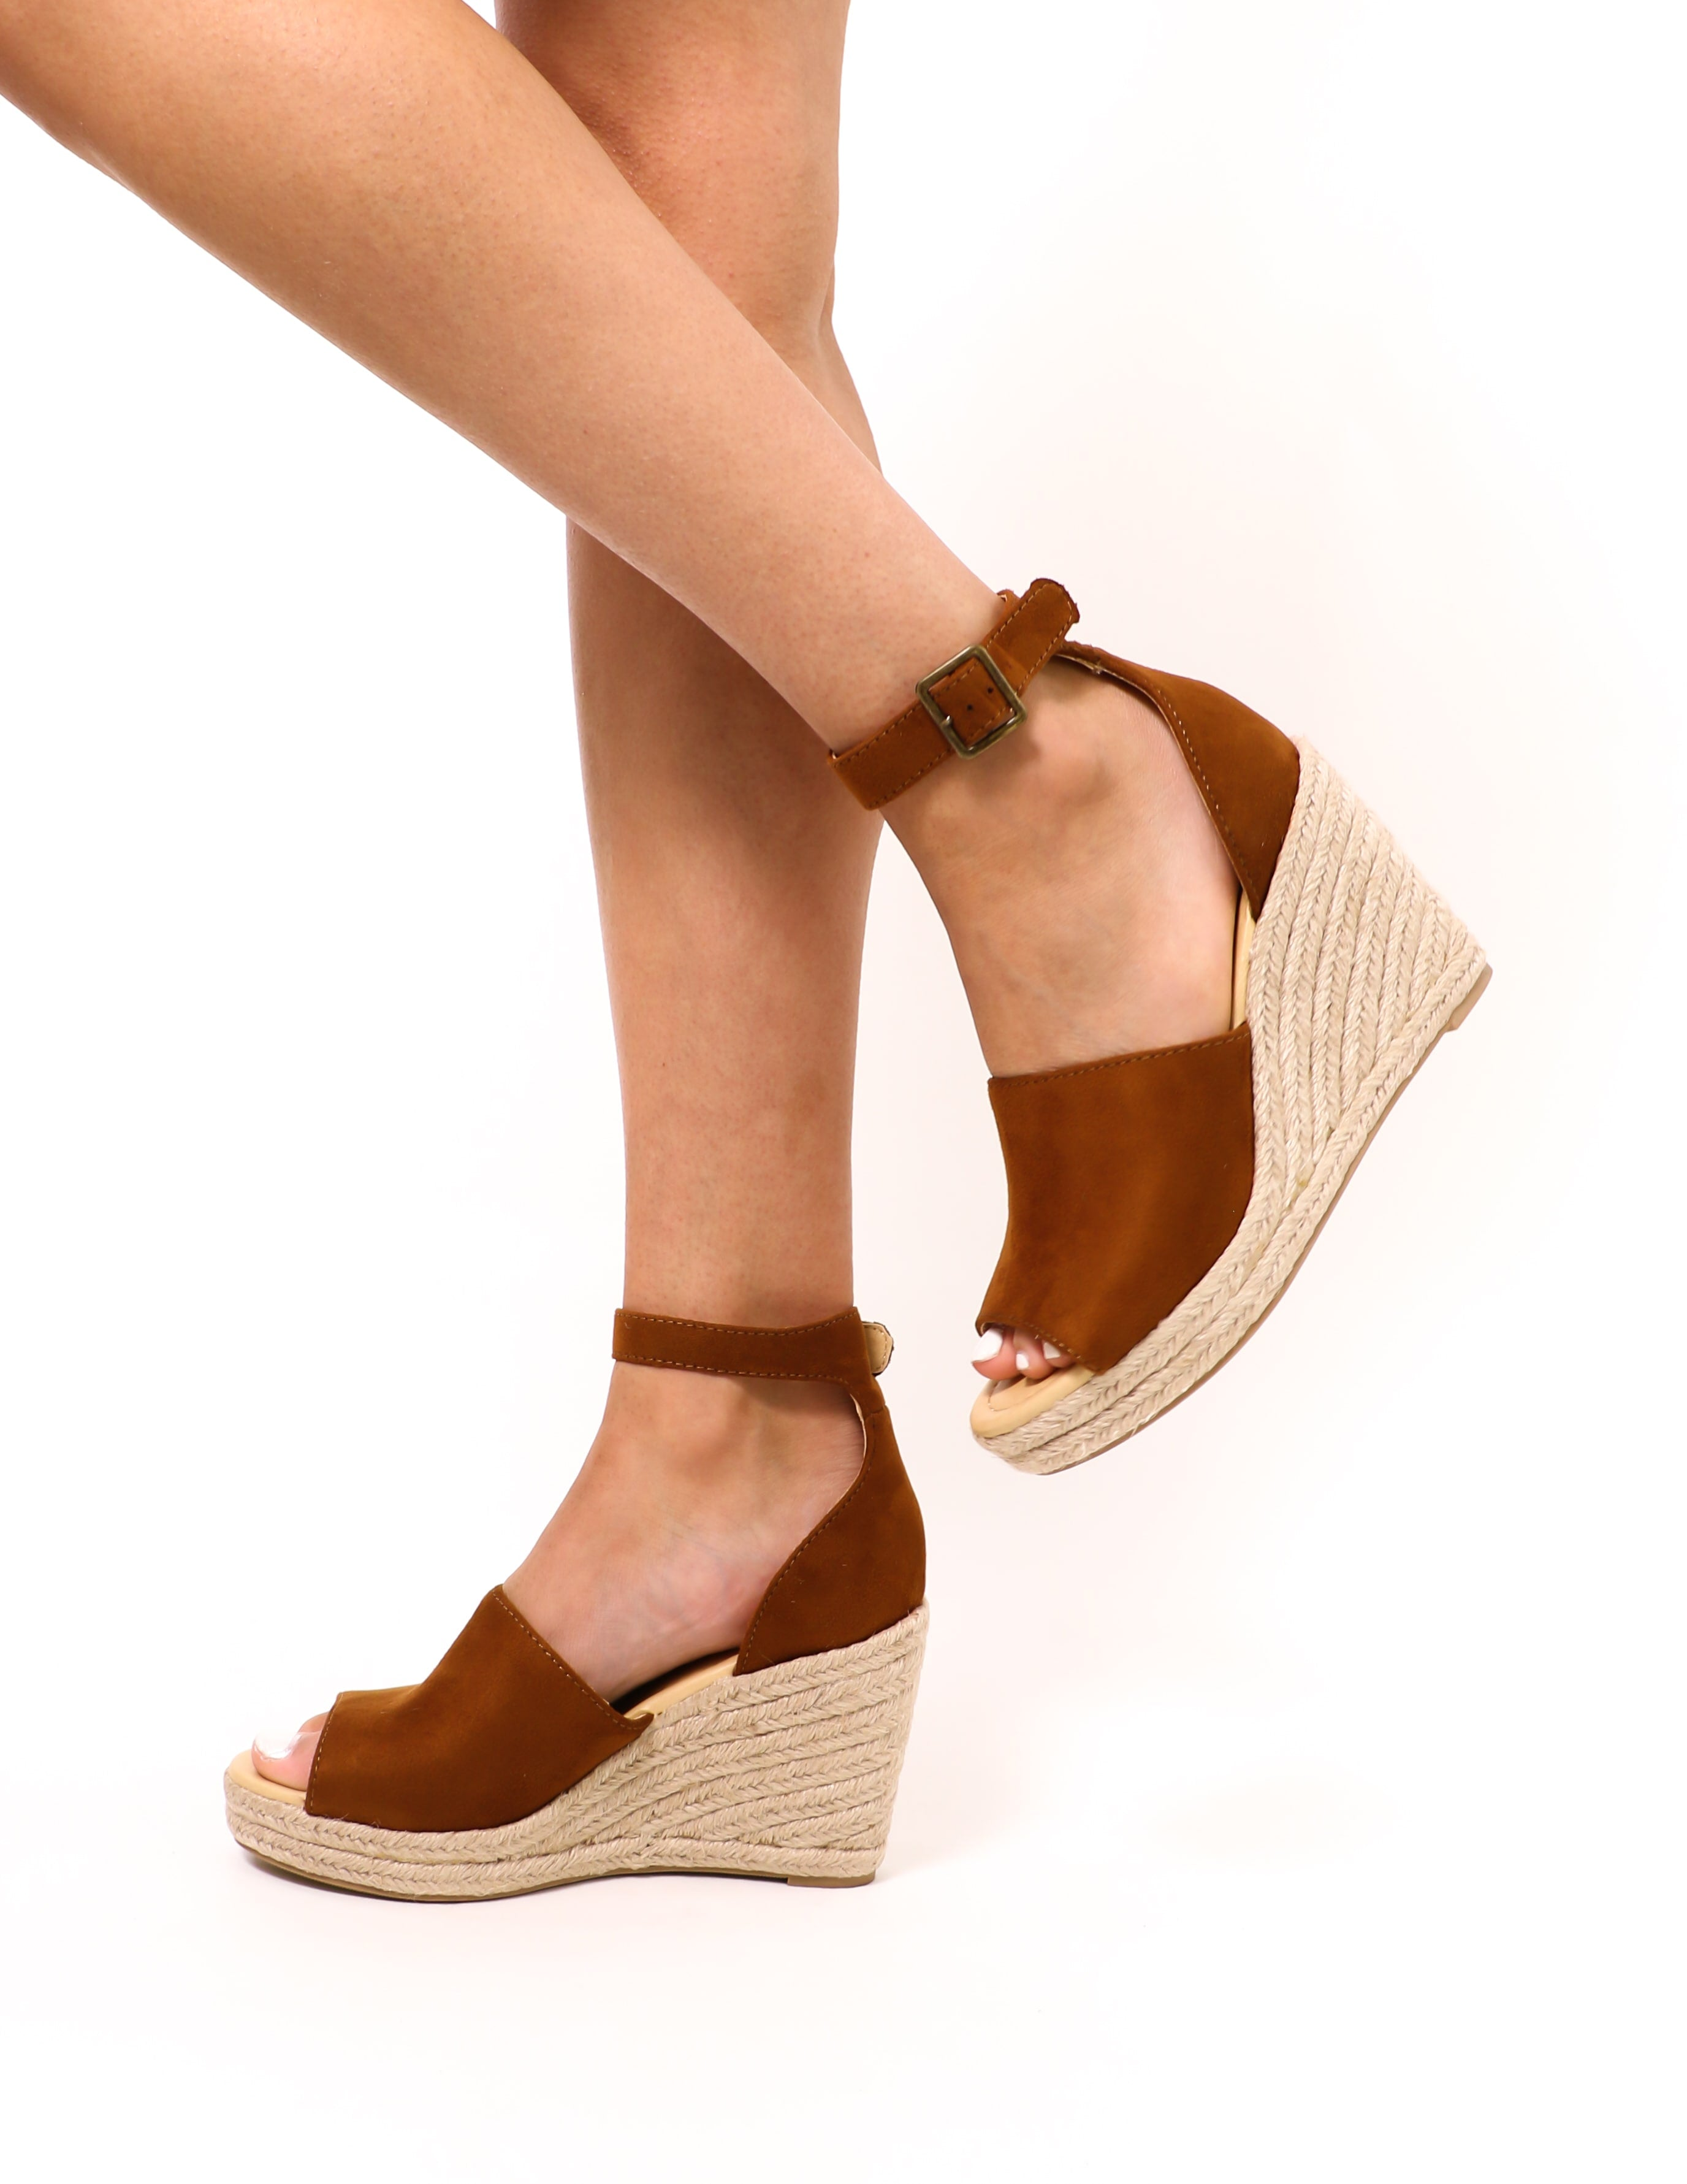 model walking in the tan this is not a espadrille wedge sandal - elle bleu shoes